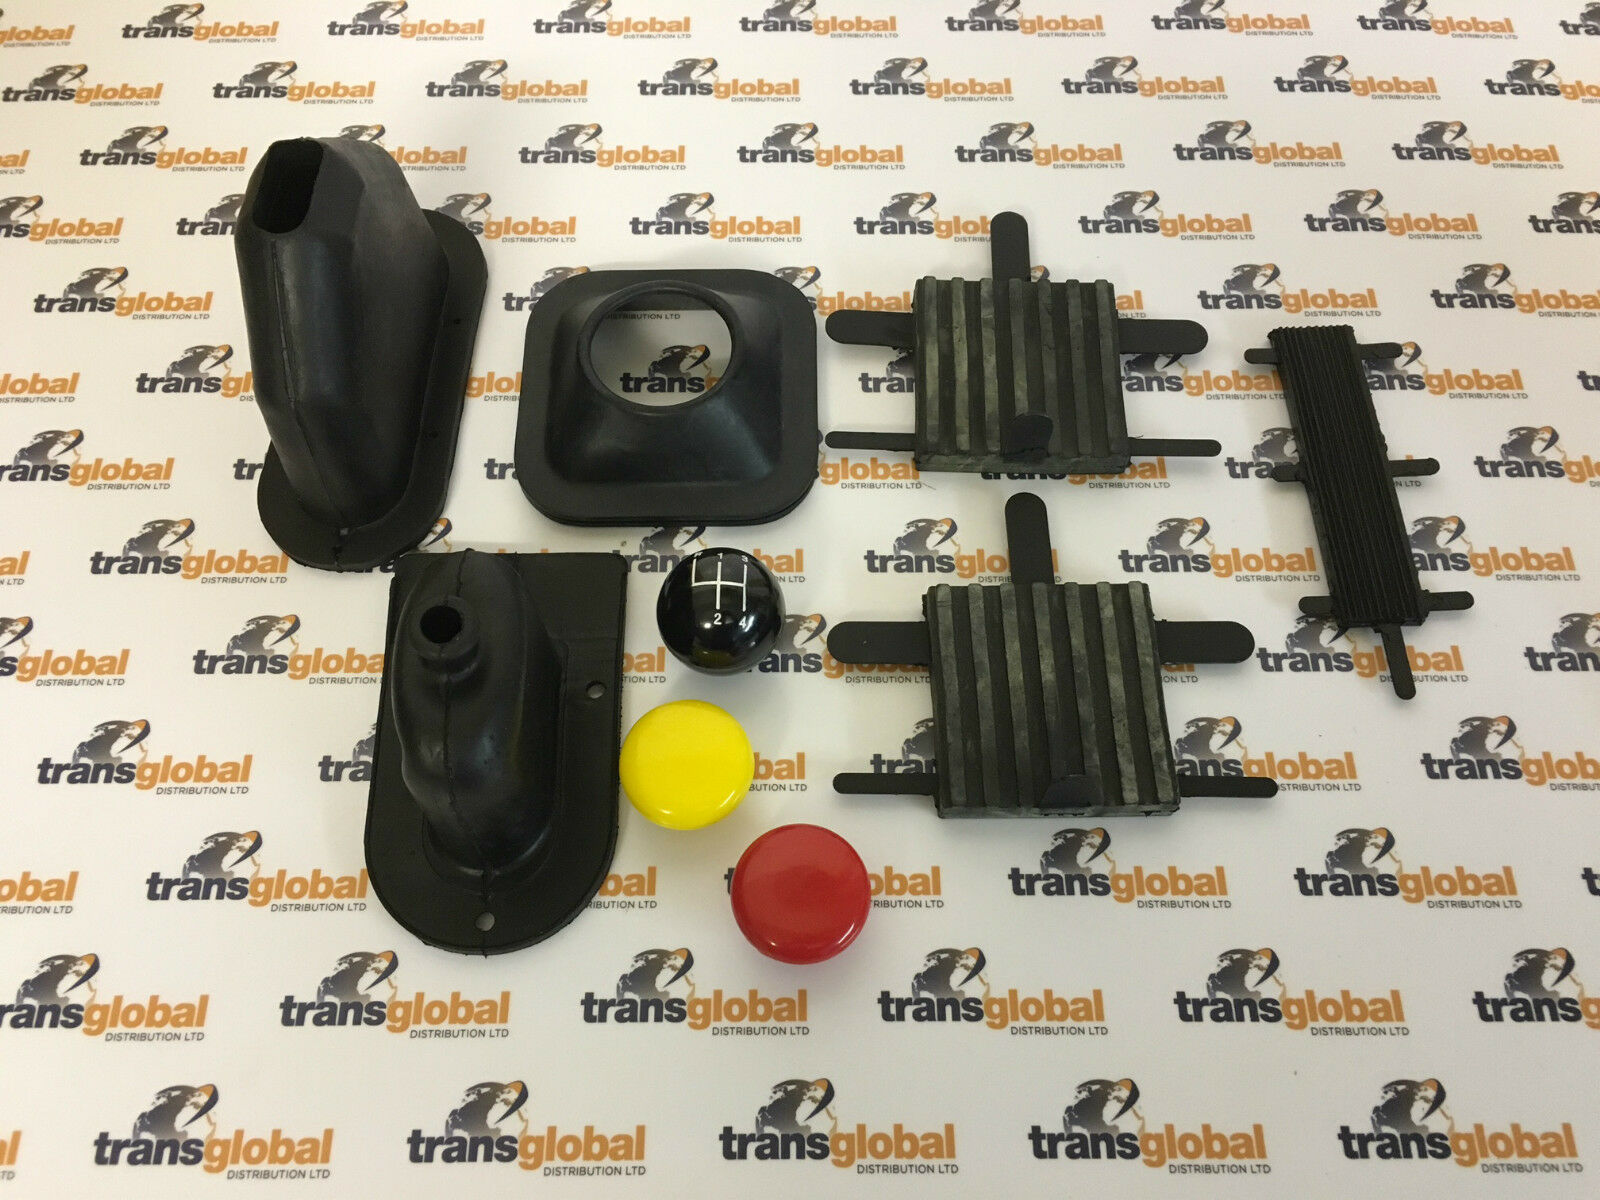 GEAR KNOBS /& GAITERS LAND ROVER SERIES 3 INTERIOR REFURB KIT PEDAL RUBBERS